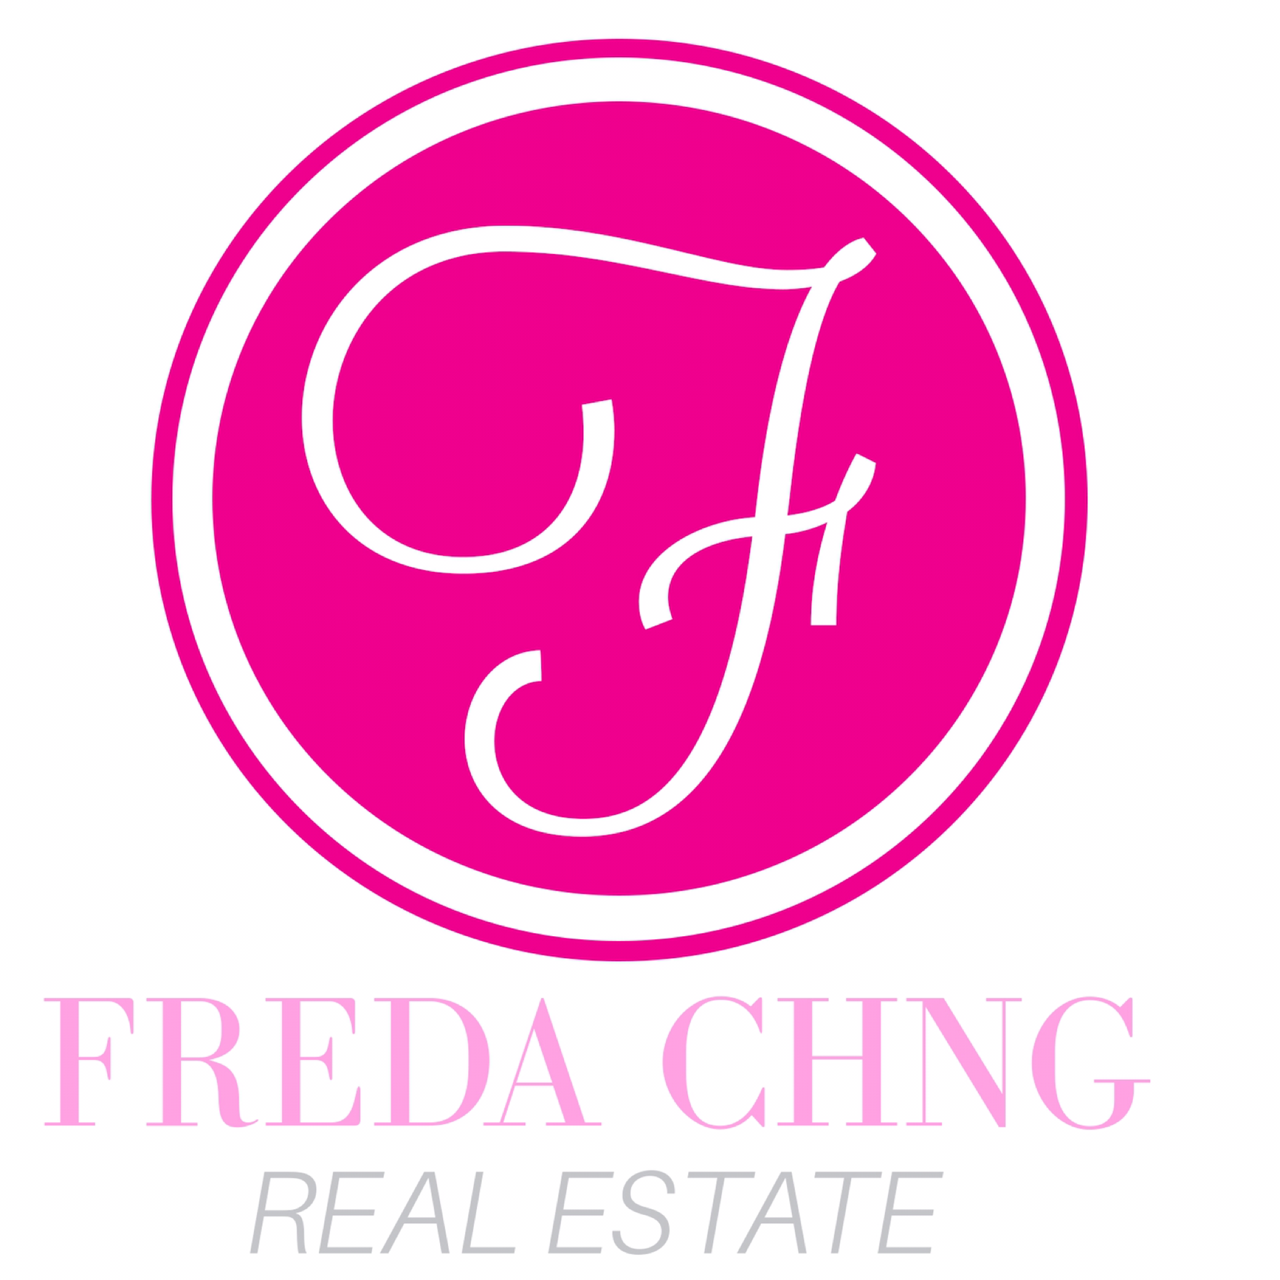 FREDA CHNG REAL ESTATE